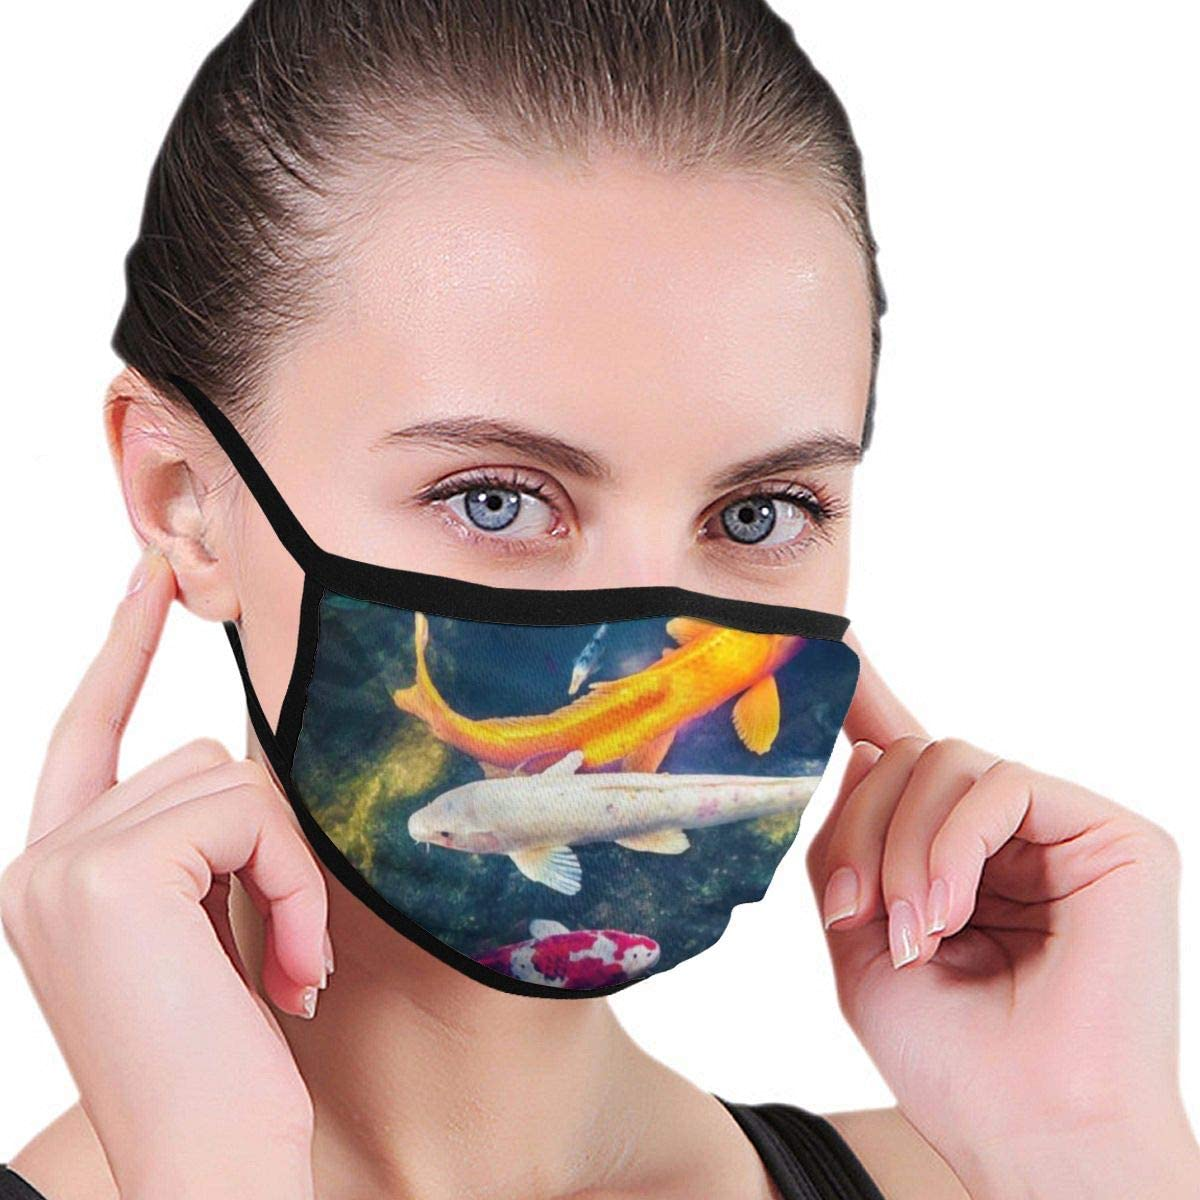 2 Packs Reusable Mouth Wear, Koi Fish Pond Unisex Cotton Facial Covering